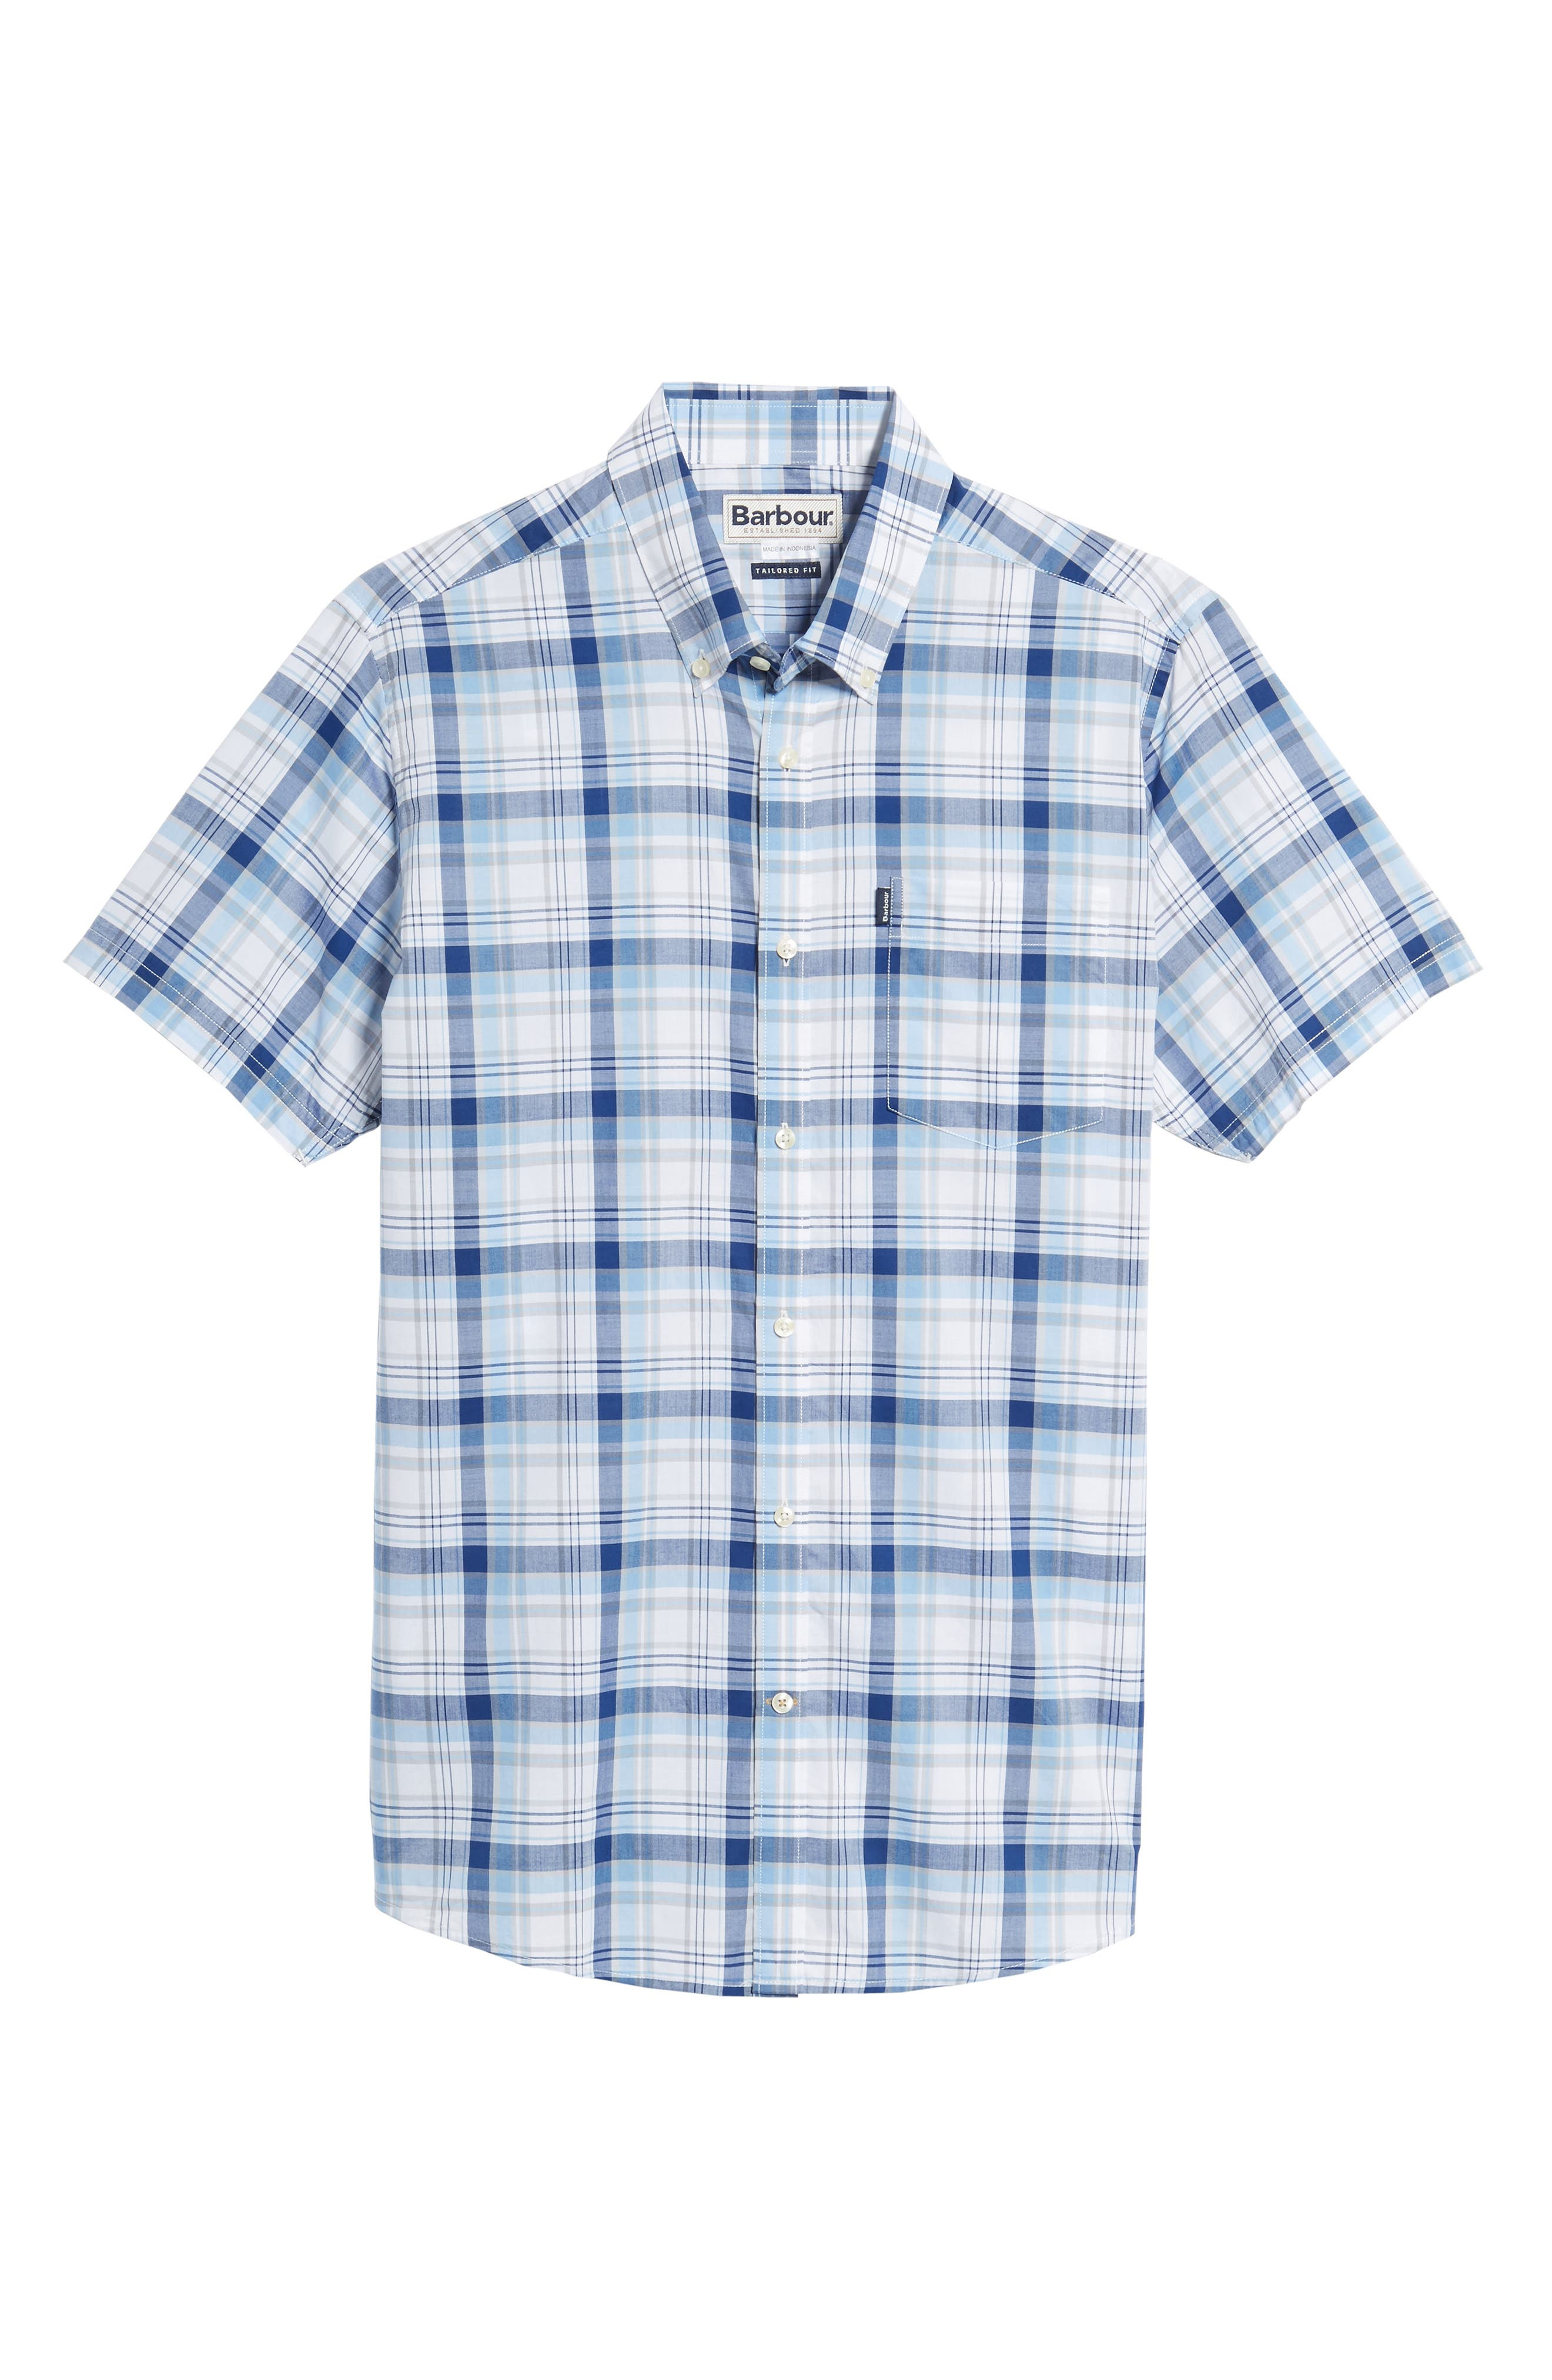 Gerald Tailored Fit Plaid Sport Shirt,                             Alternate thumbnail 6, color,                             Blue